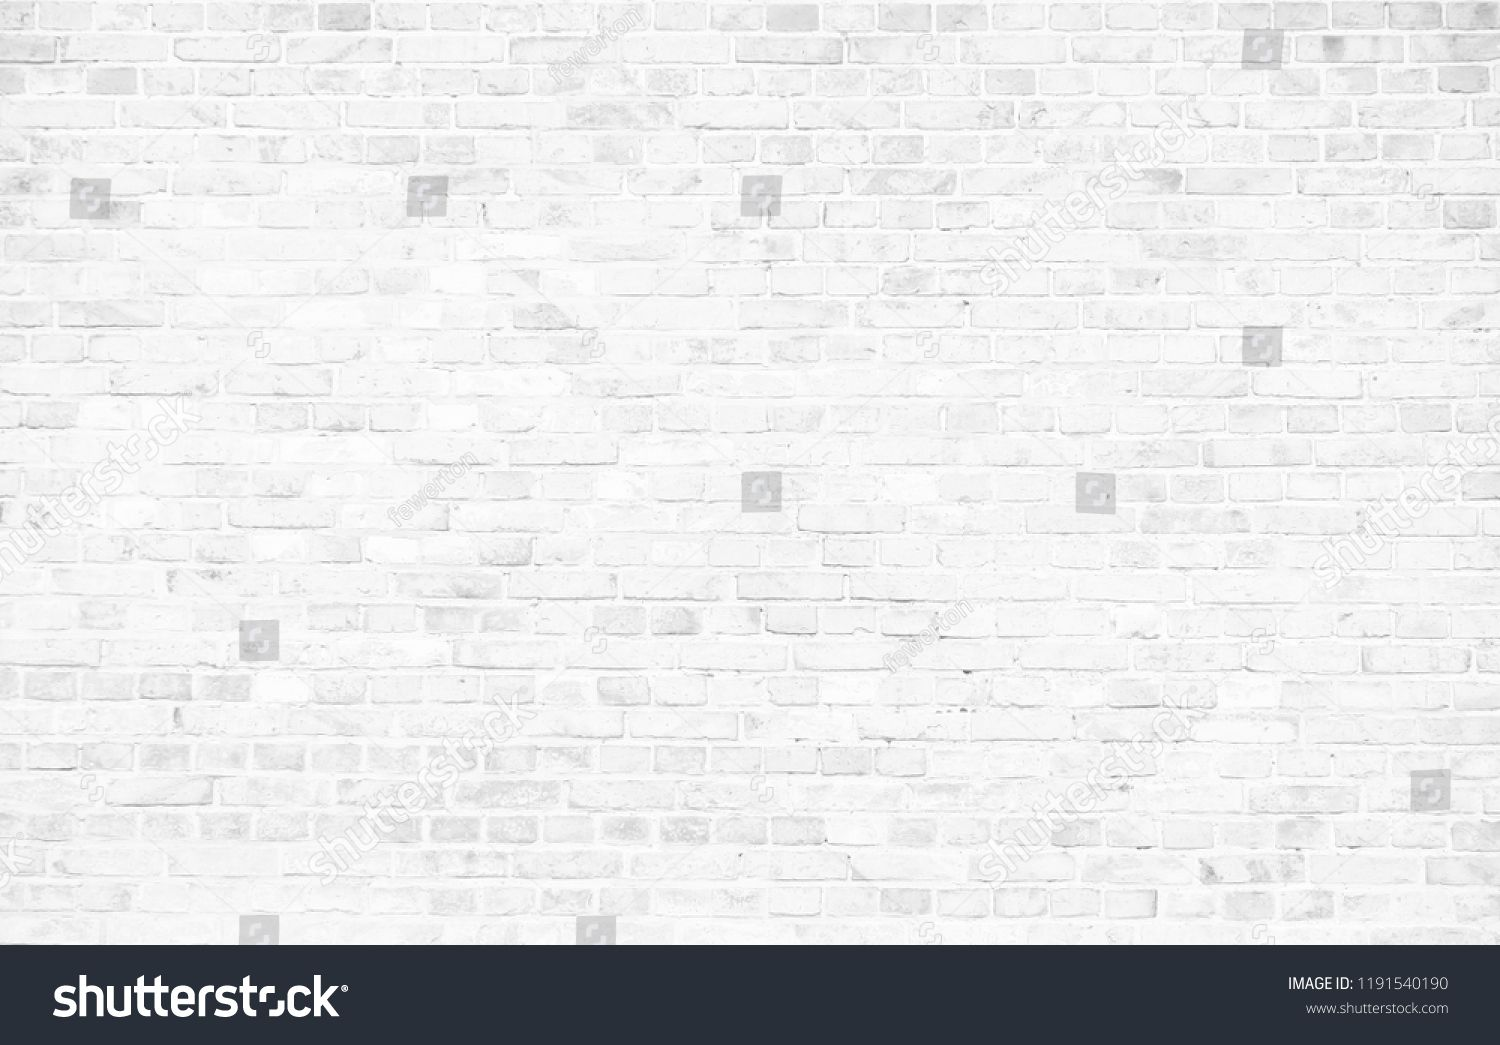 Simple Grungy White Brick Wall With Light Gray Shades Seamless Pattern Surface Texture Background Brick Wall Light Si White Brick Walls White Brick Brick Wall